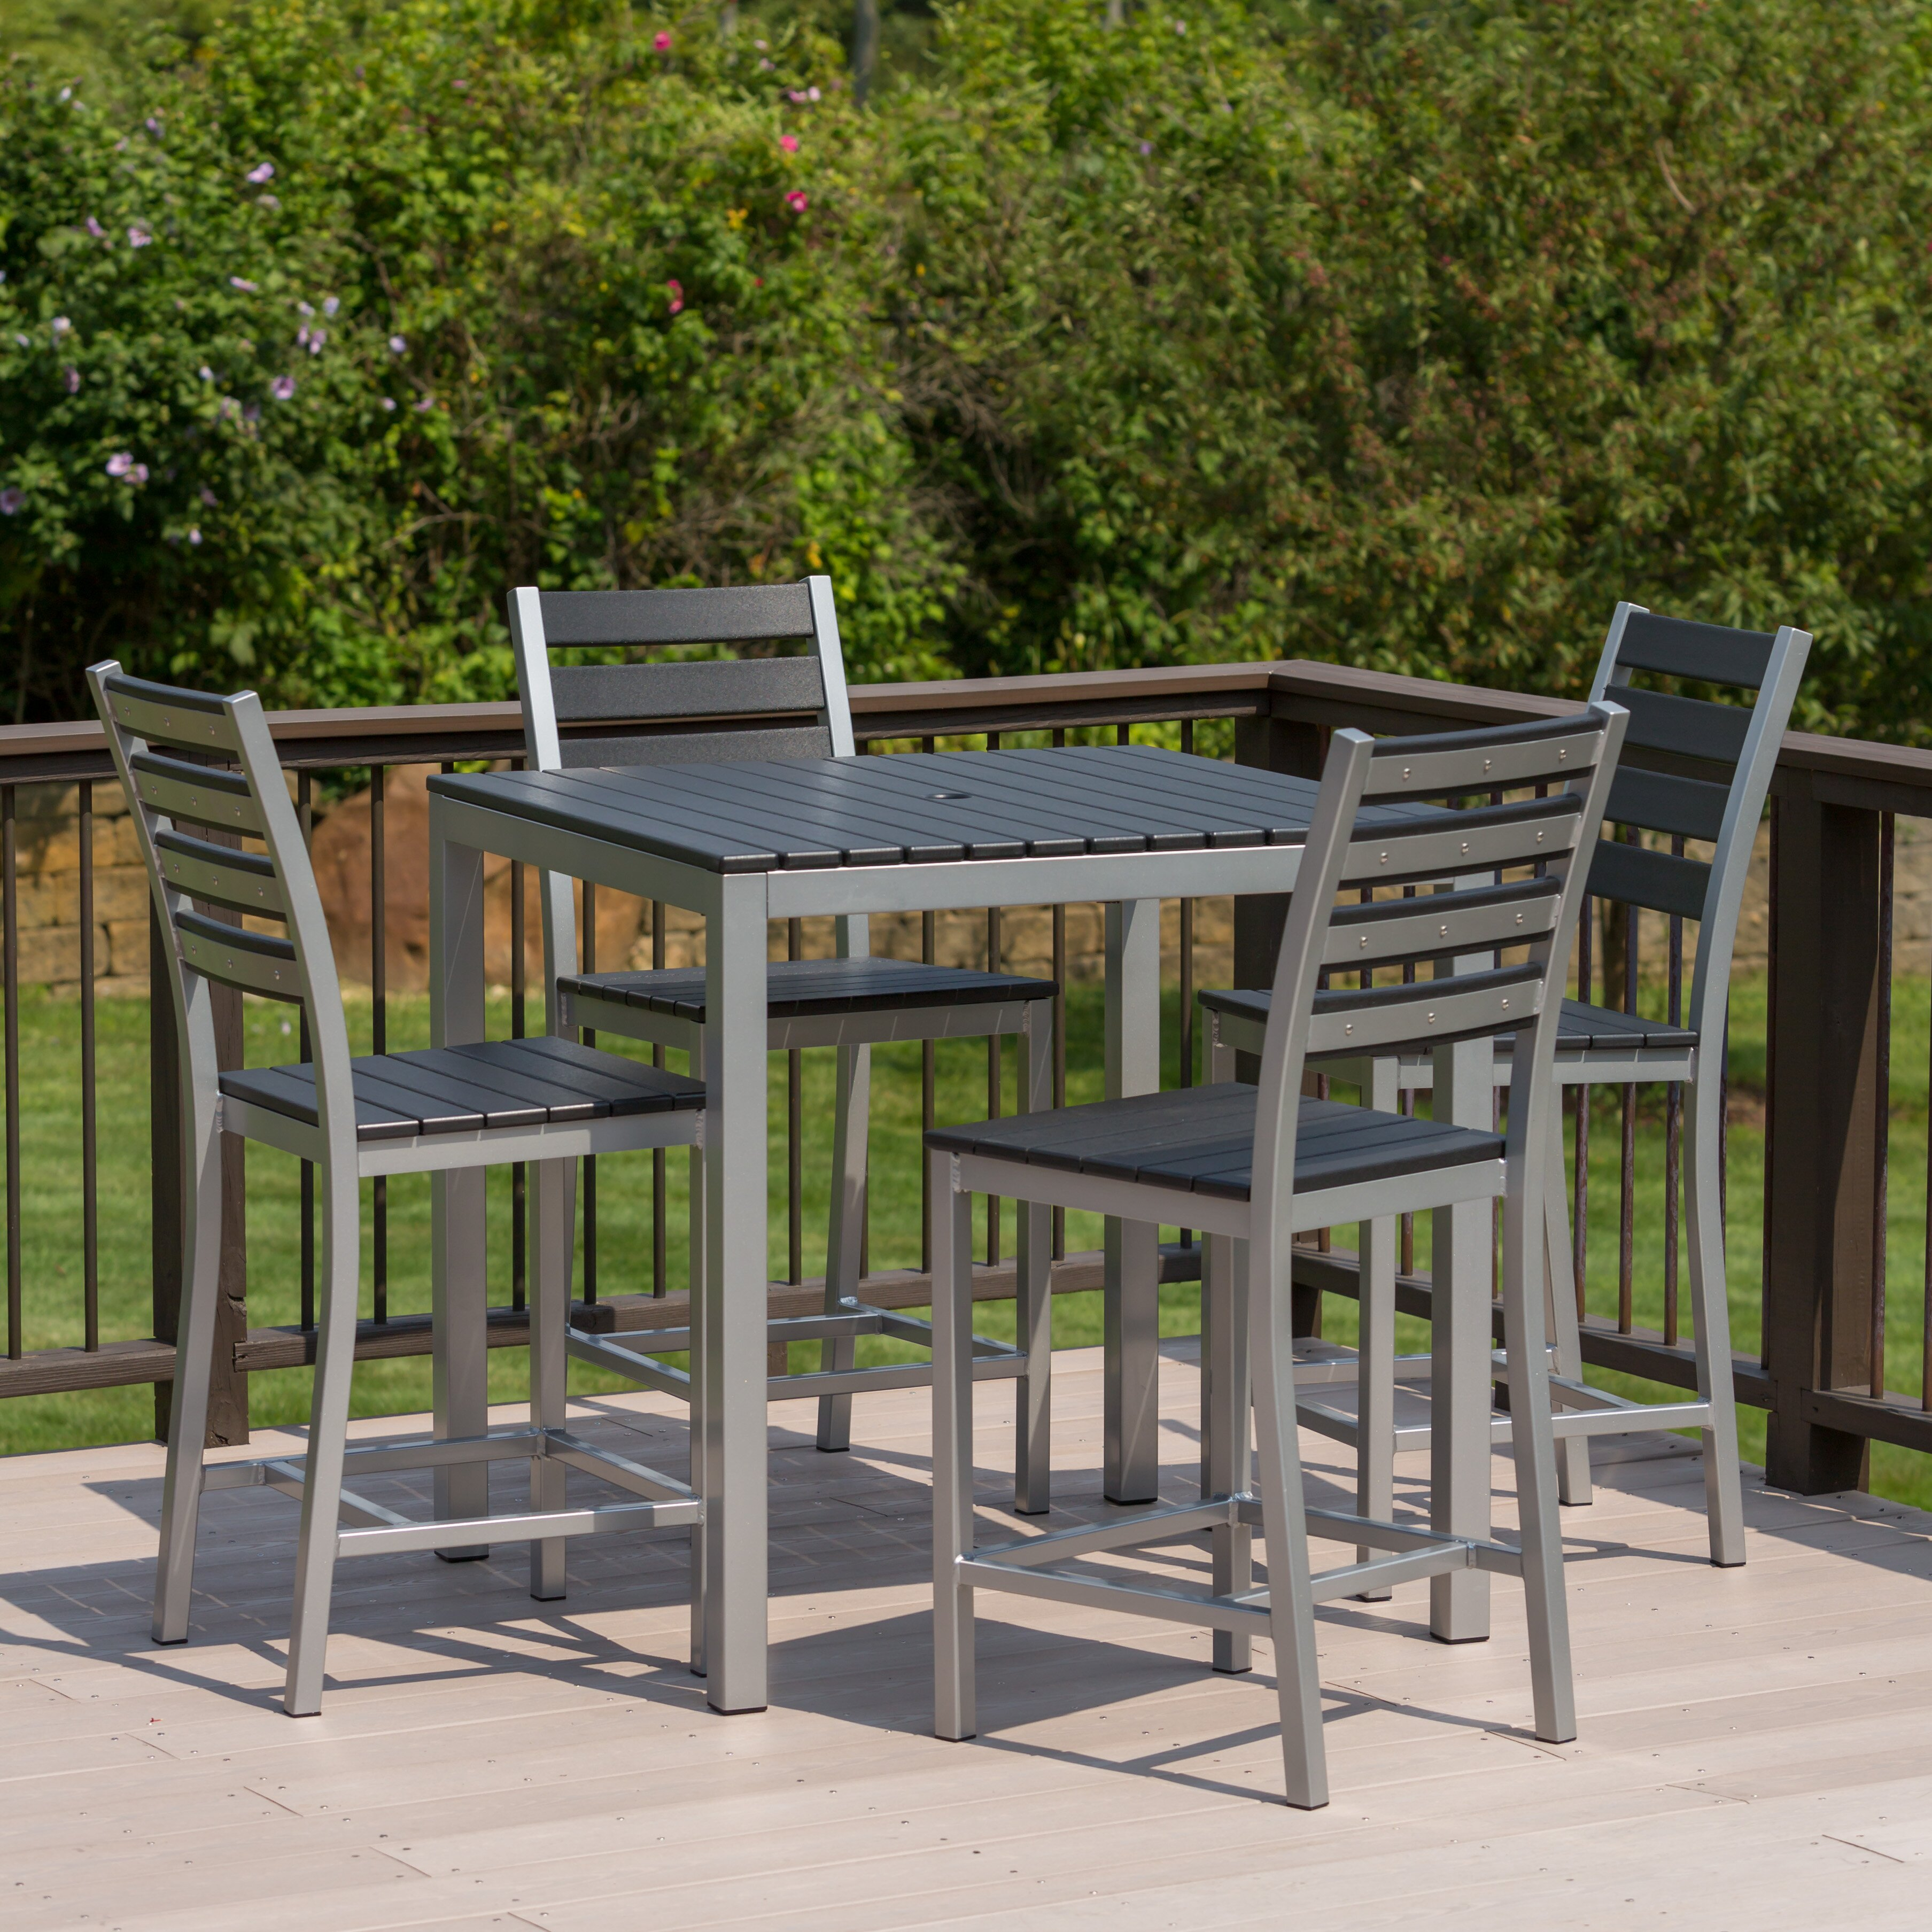 Counter Height Patio Dining Sets : Elan Furniture Loft Outdoor Counter Height Dining Set 253 AllModern